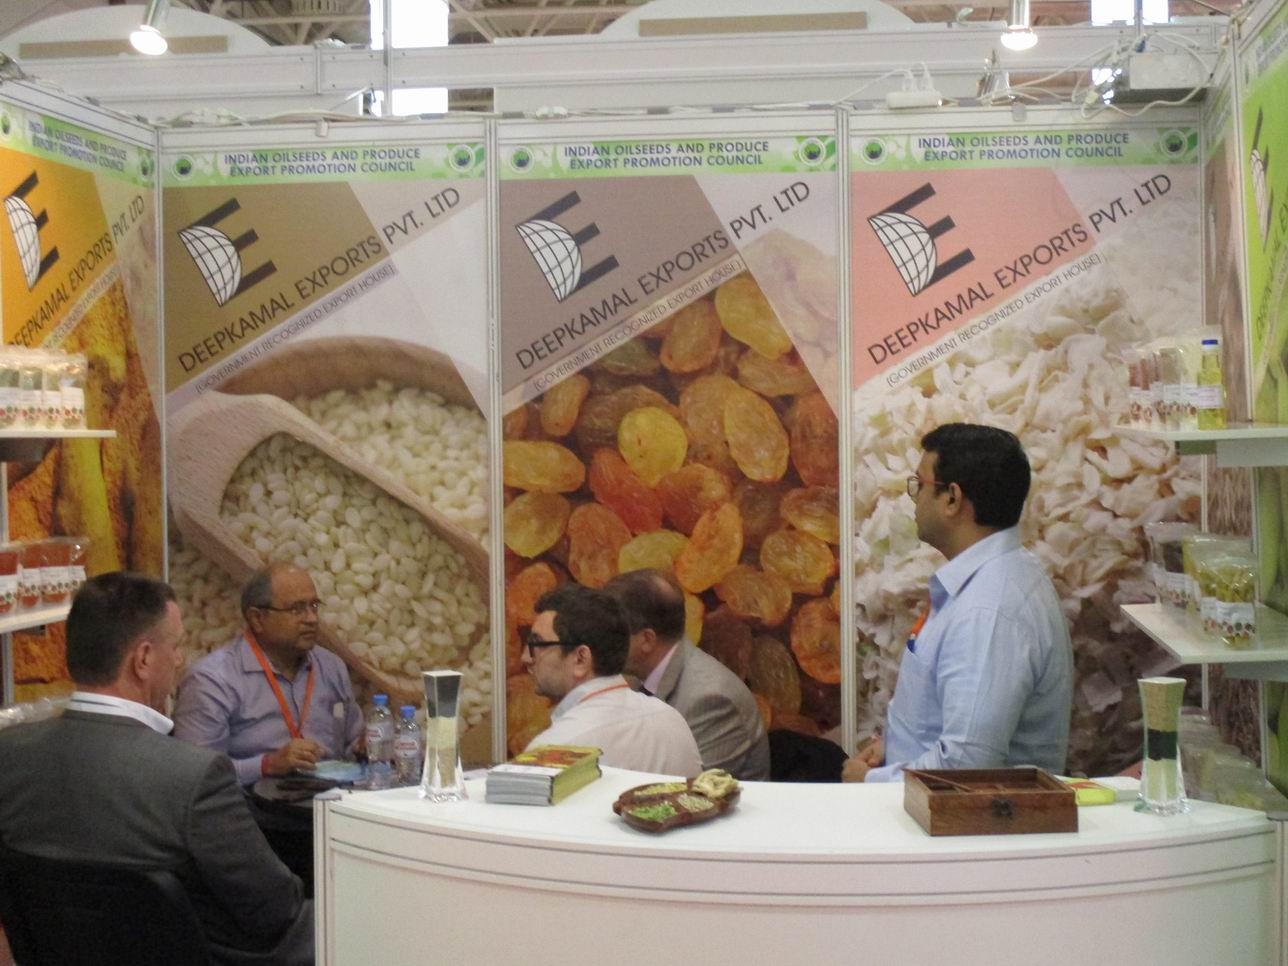 Indian Oilseeds and Produce Export Promotion Council